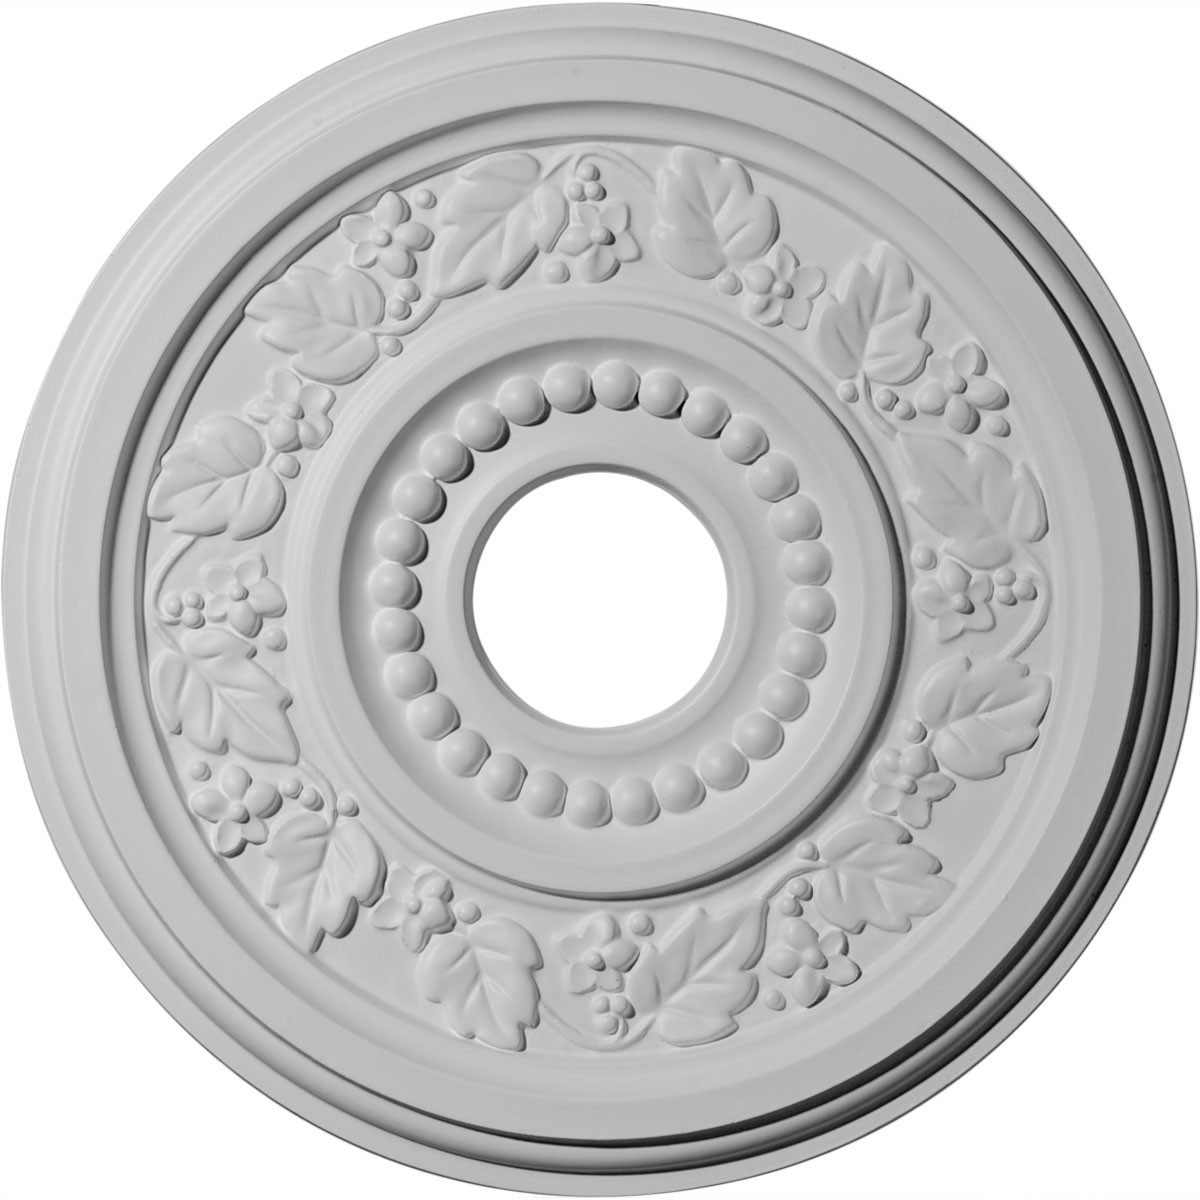 """EM-CM16GN - 16 1/8""""OD x 3 1/2""""ID x 7/8""""P Genevieve Ceiling Medallion (Fits Canopies up to 3 1/2"""")"""